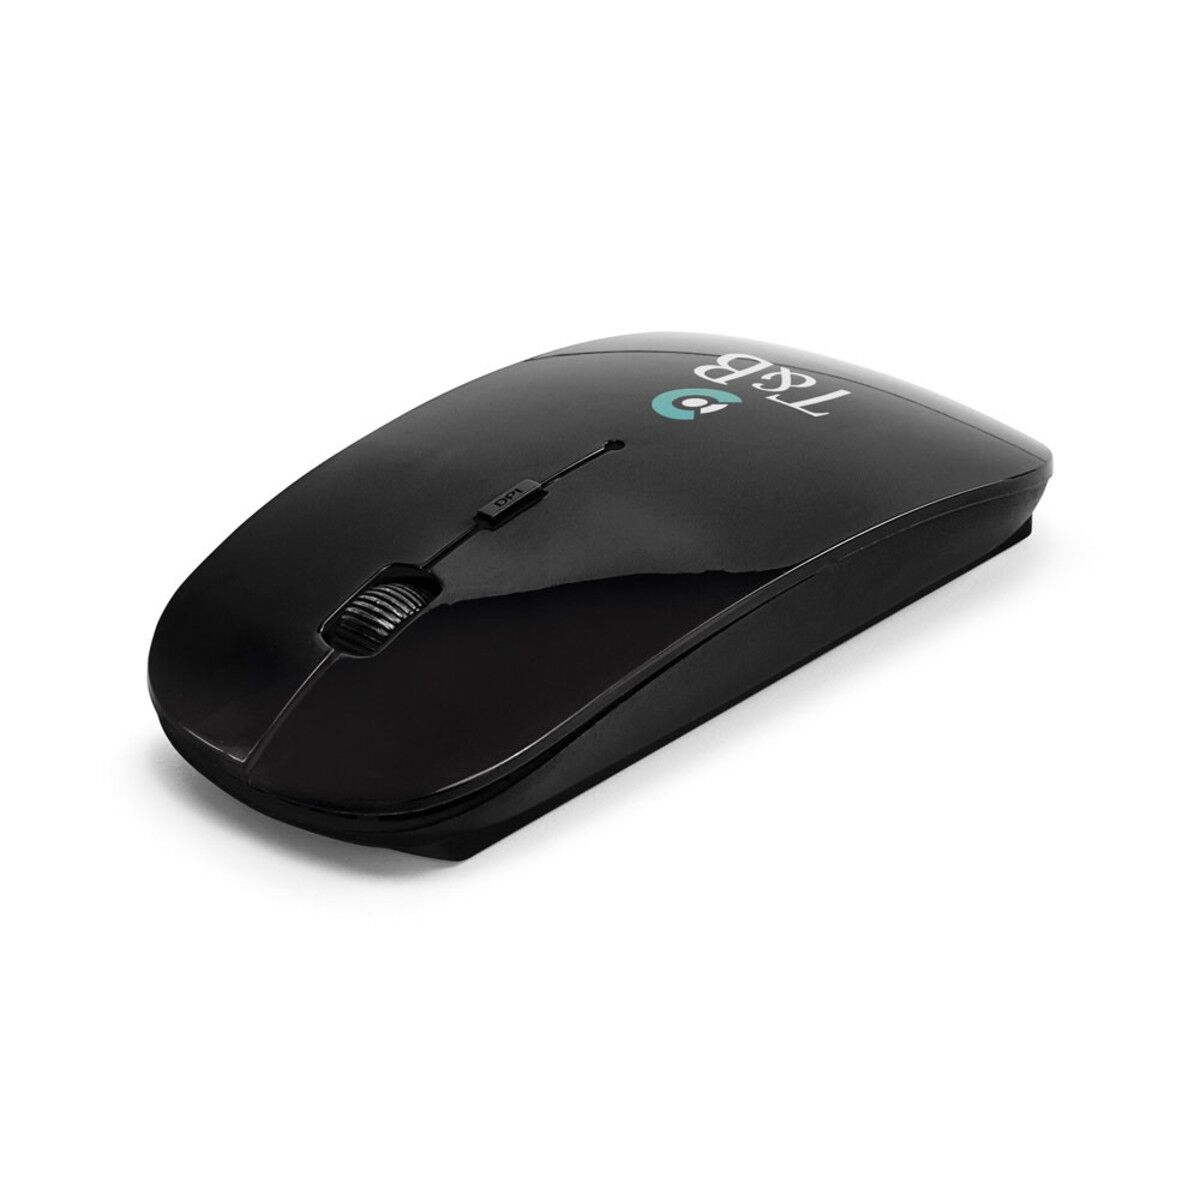 24G Wireless Mouse in Black